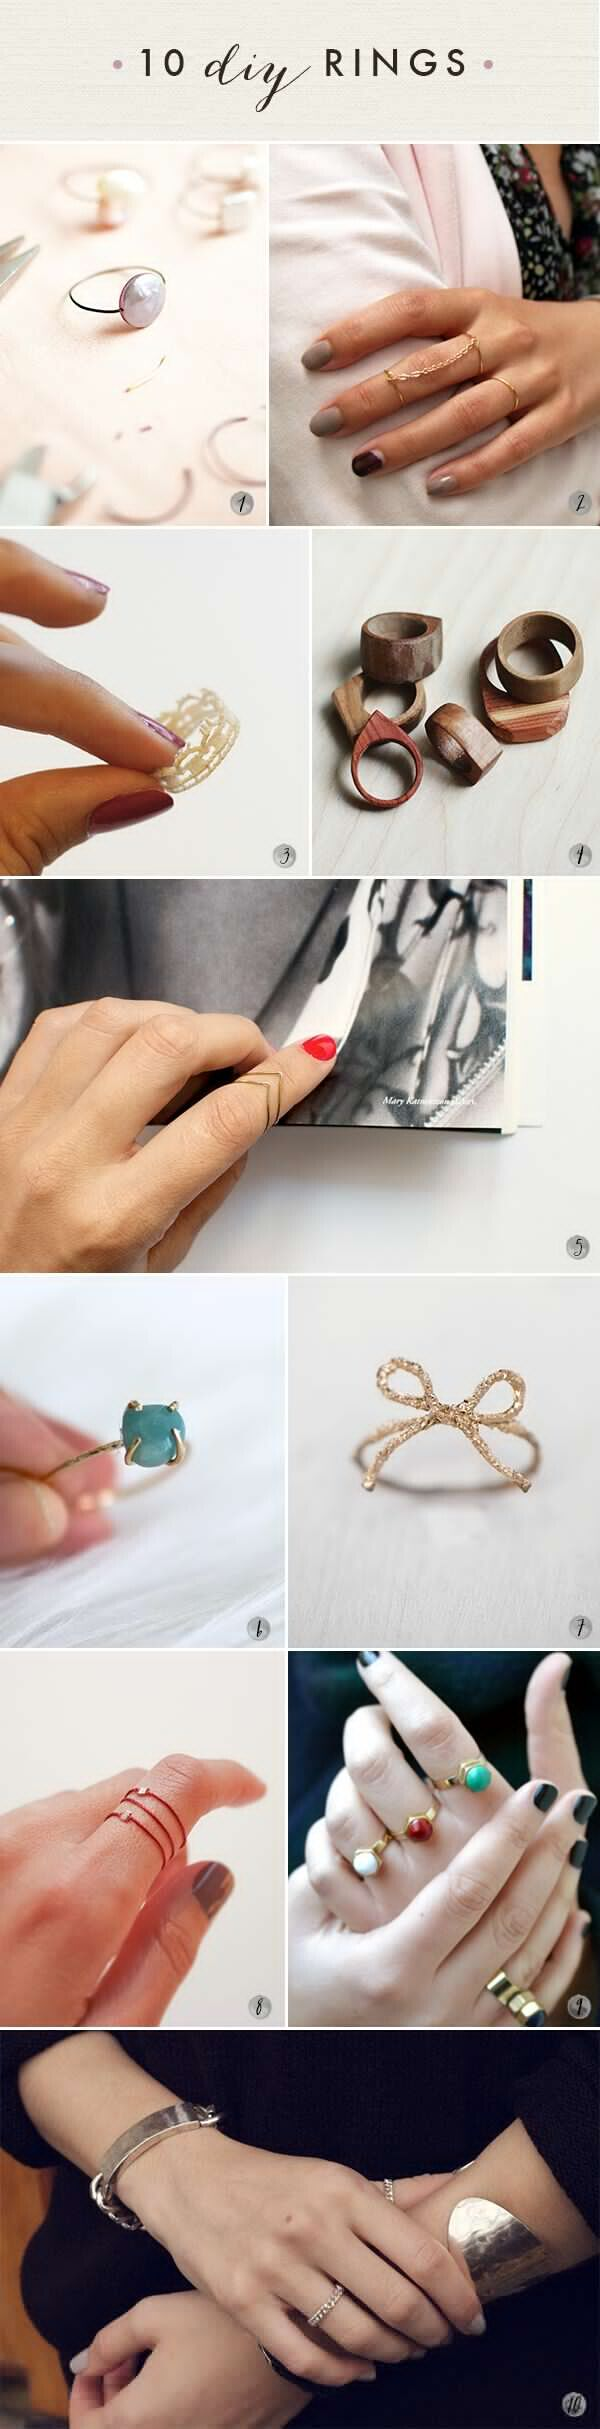 DIY Lovely Rings!